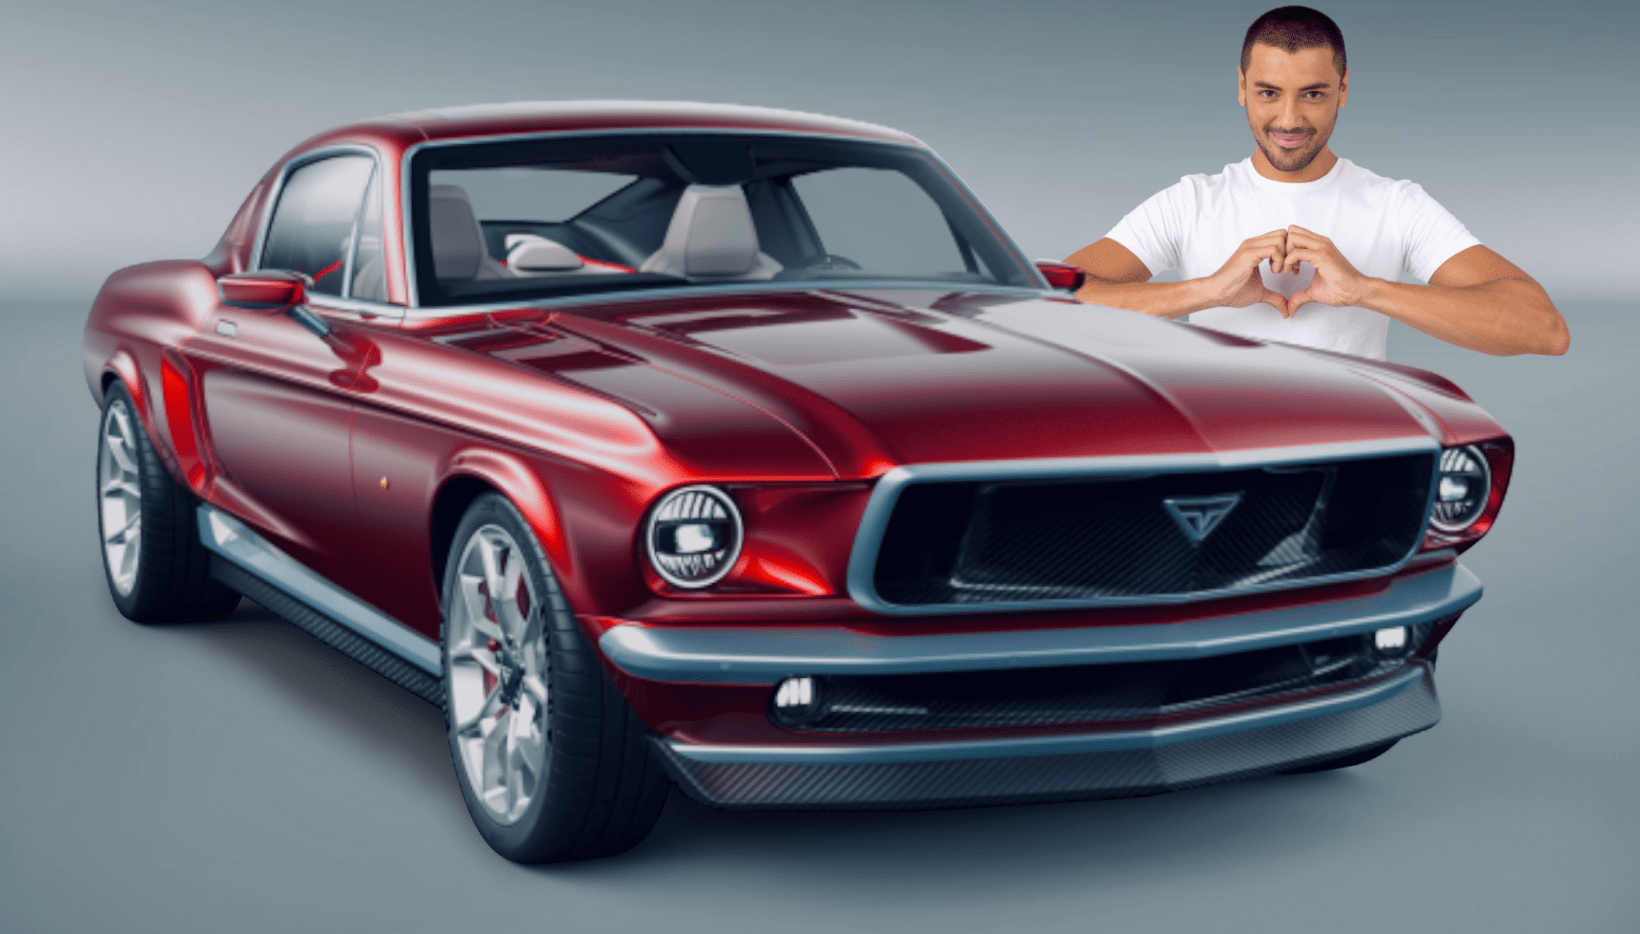 The perfect all-electric Ford Mustang is actually a souped-up Tesla